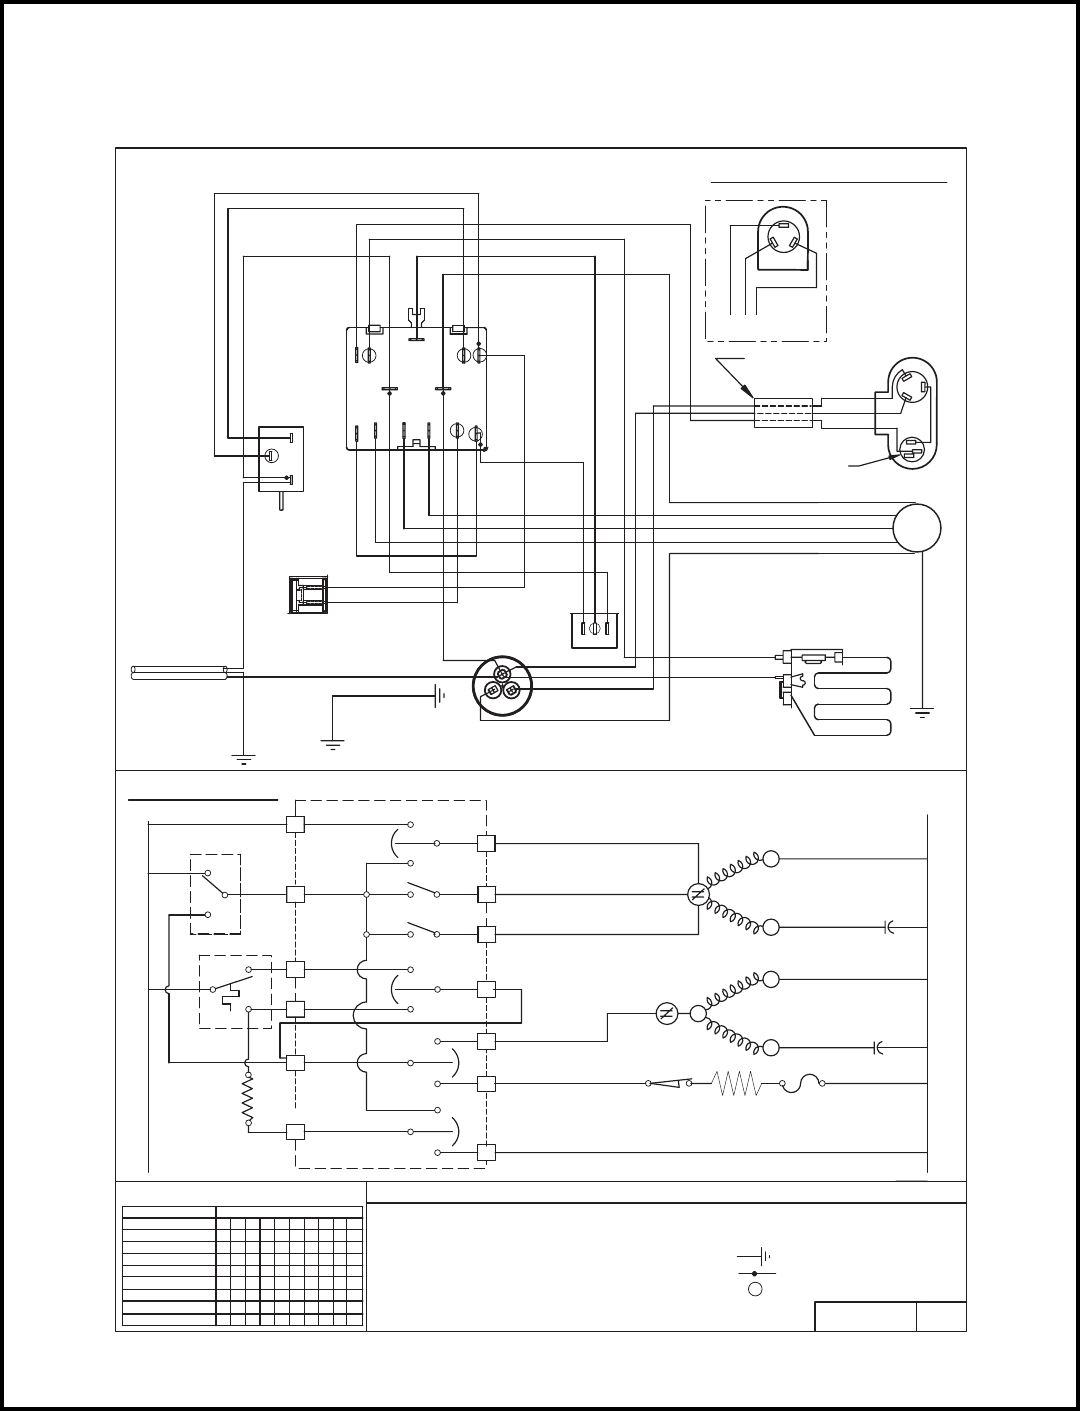 90edaa2f 9663 4993 8678 e41f61b4922d bg38 page 56 of friedrich air conditioner racservmn user guide  at bakdesigns.co